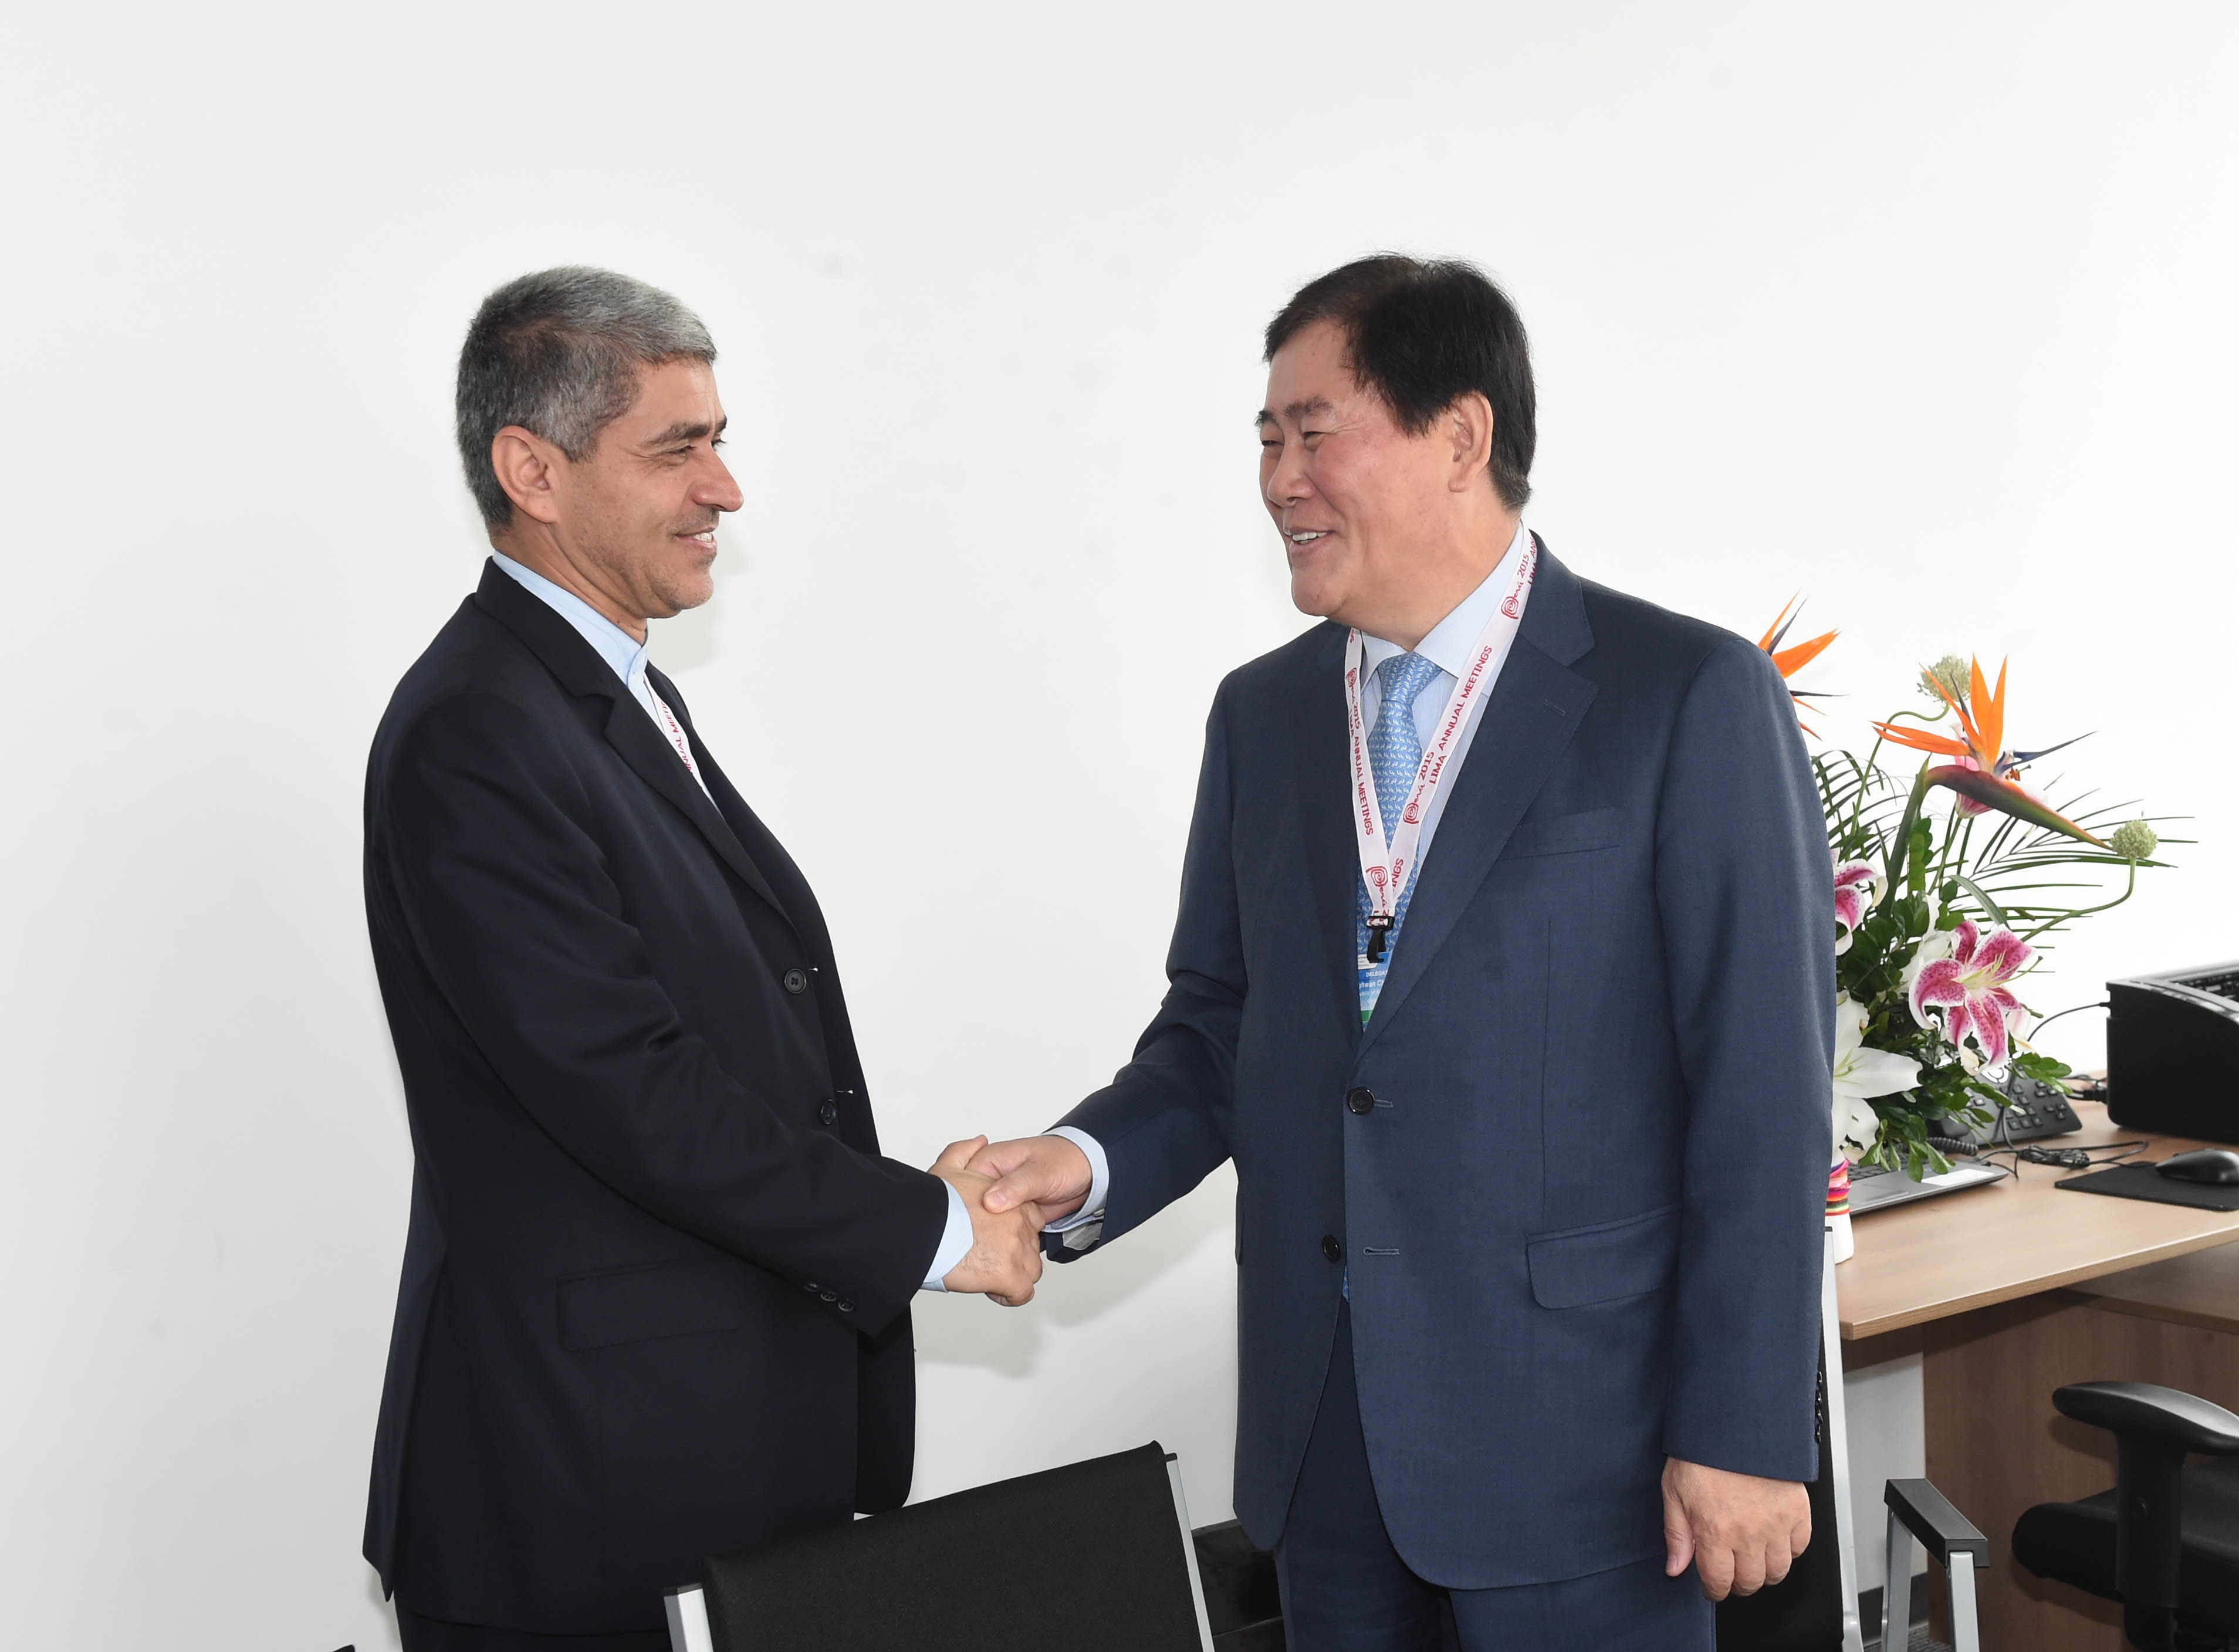 Deputy Prime Minister Choi meets with Iranian Minister of Economy and Finance Ali Tayebnia at the IMF/World Bank Annual Meetings in Lima, Peru